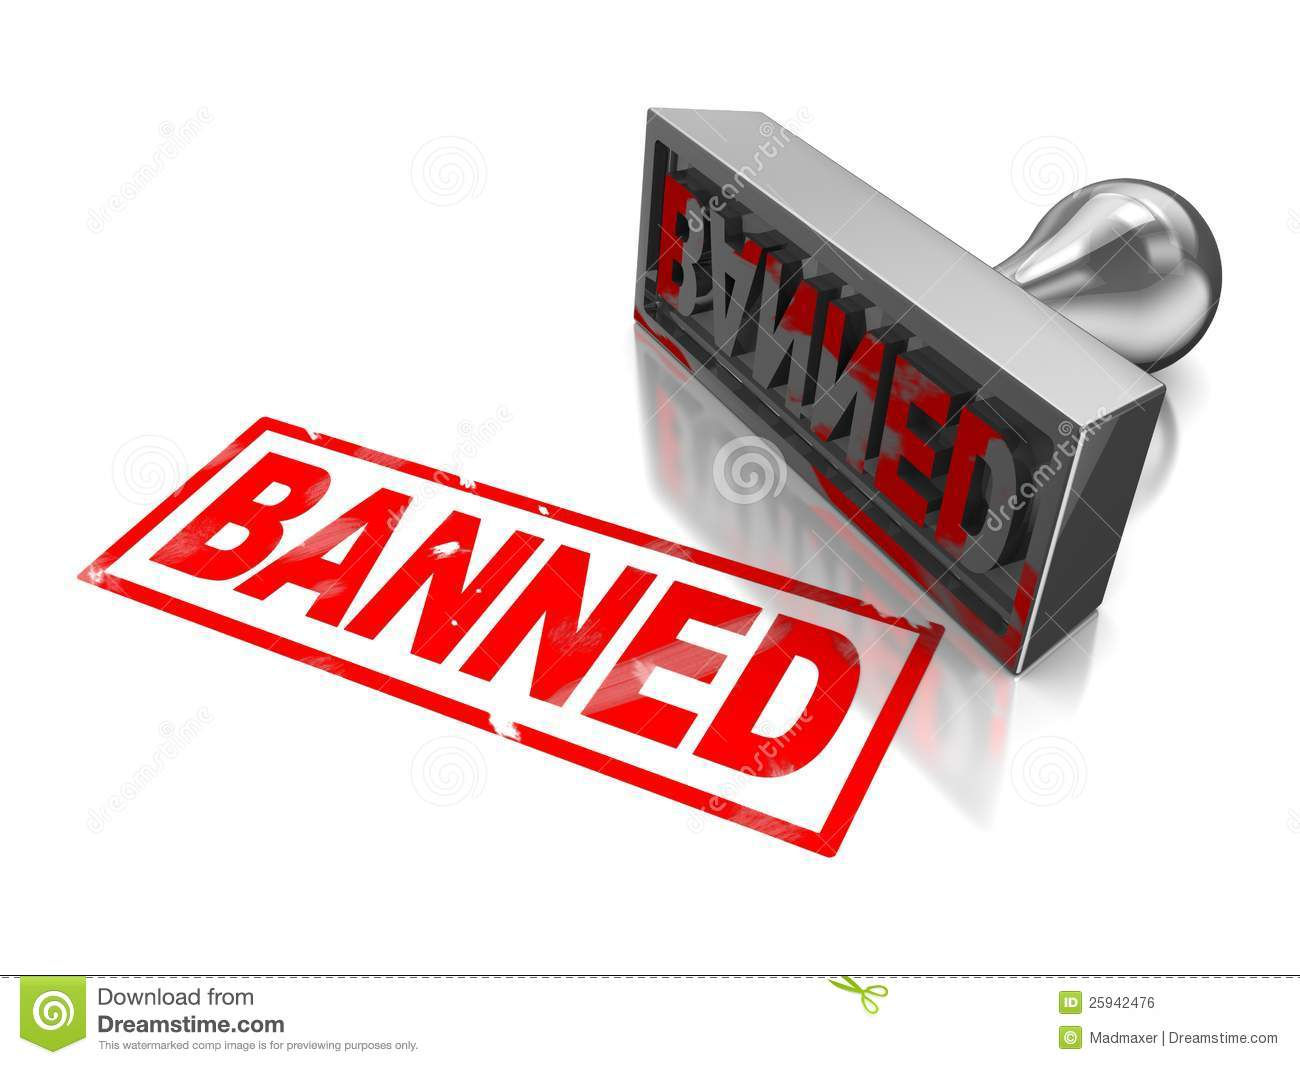 banned stamp stock photos - photo #2